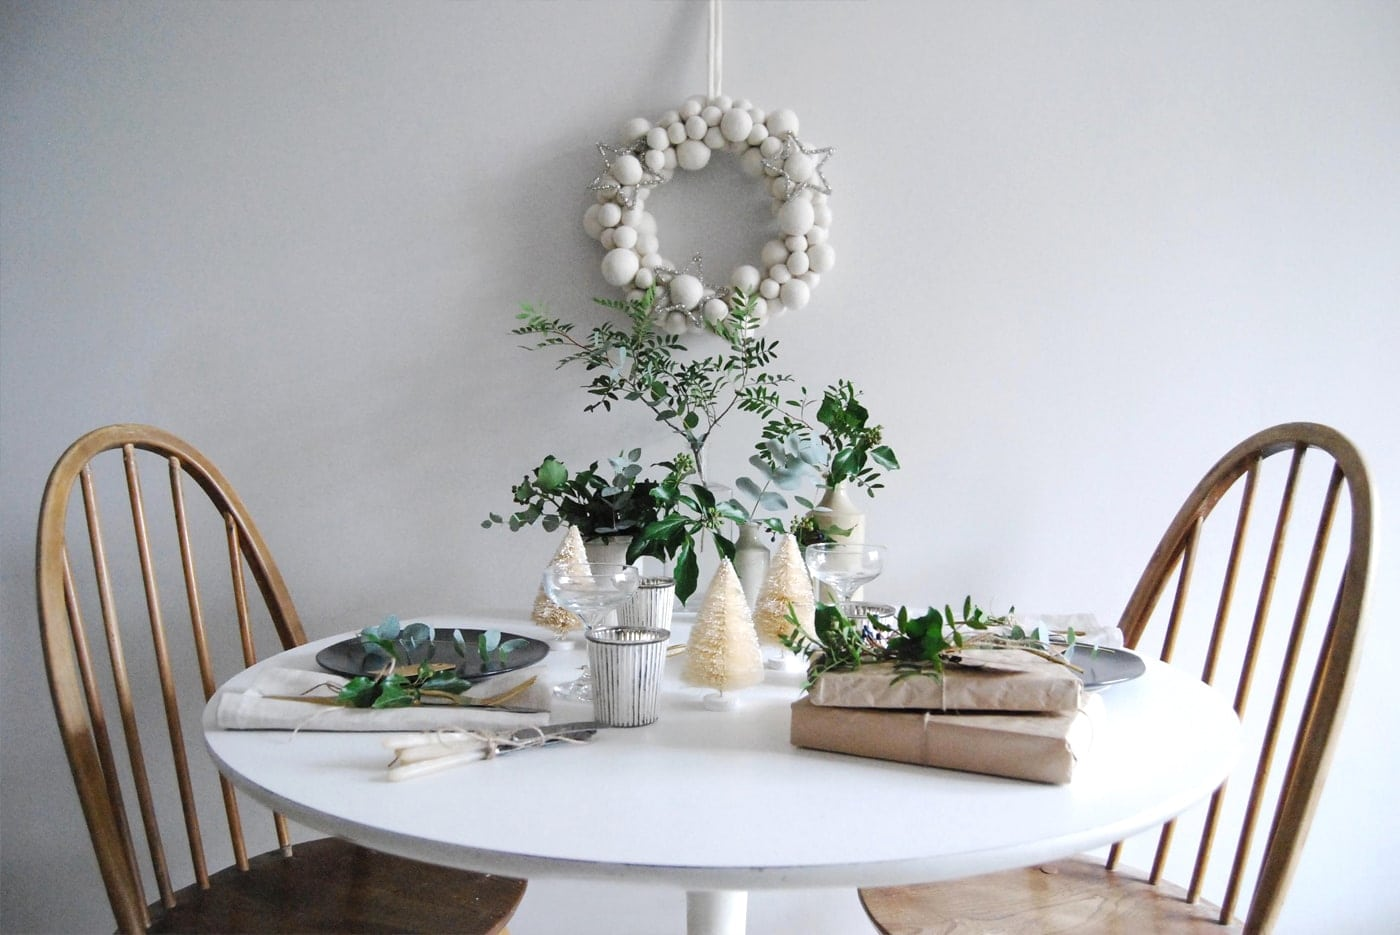 12 styled days of Christmas with West Elm | Cate St Hill | festive styled table decor